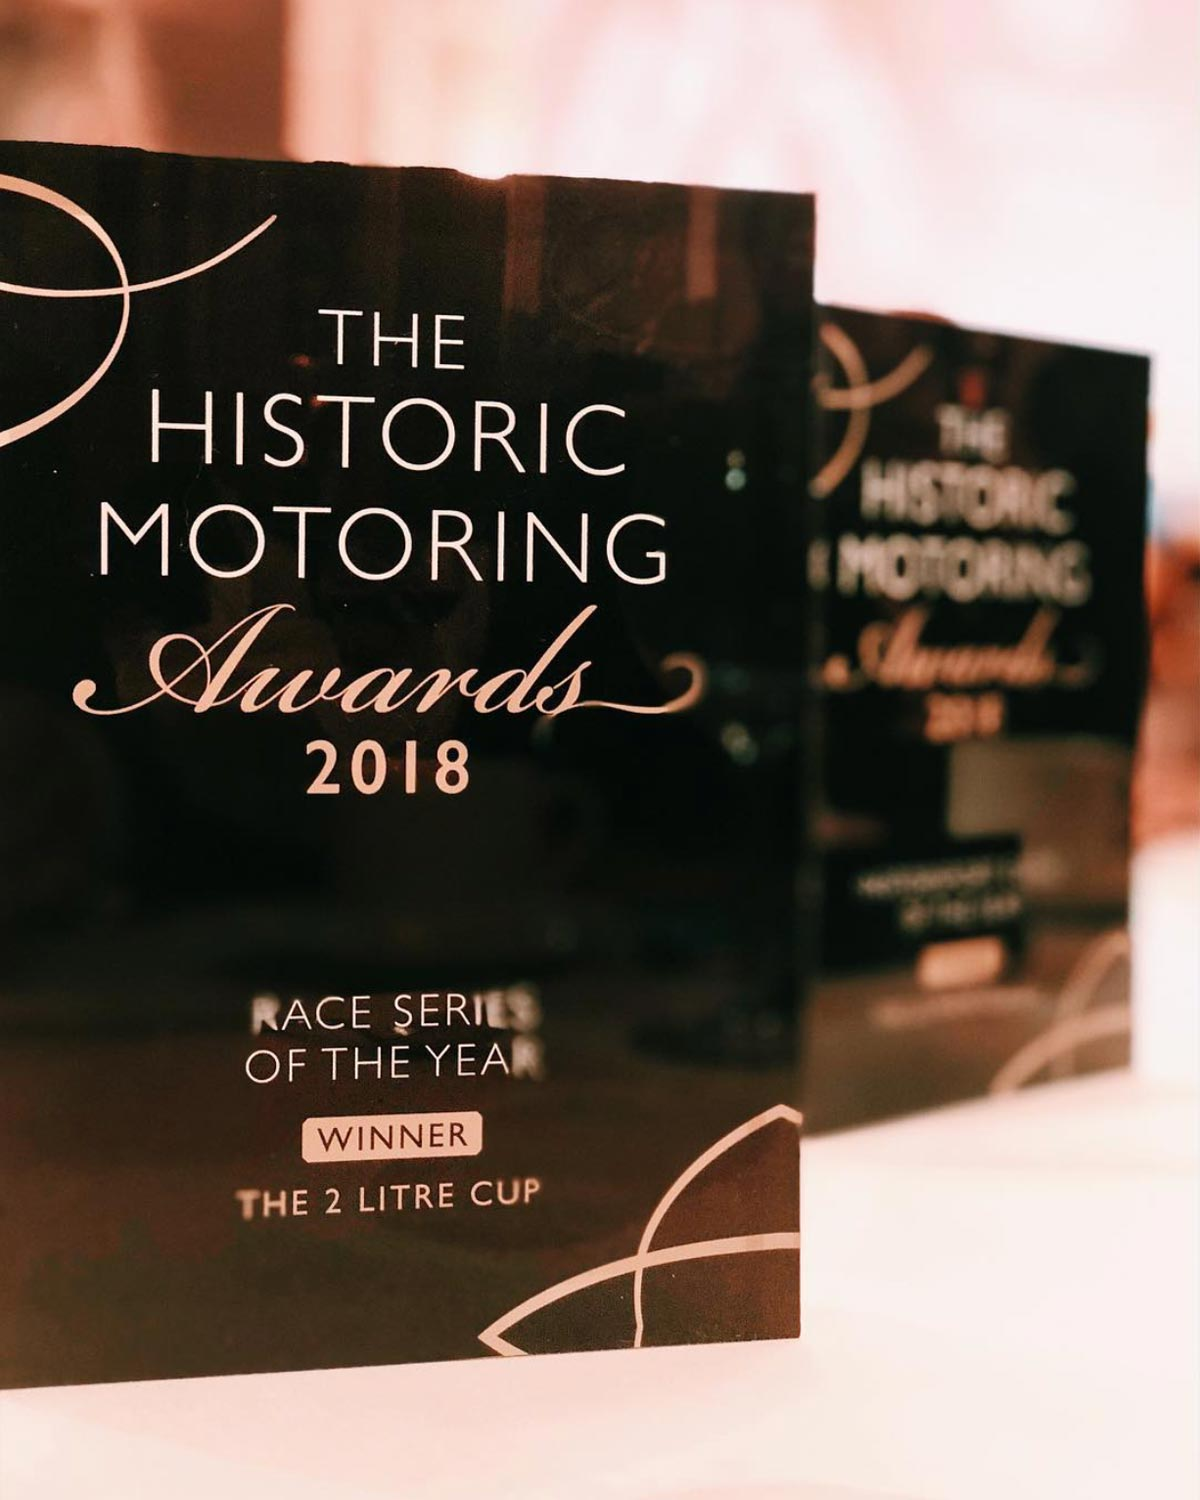 2.0L Cup wins Race Series of the Year — Maxted-Page historic Porsche UK